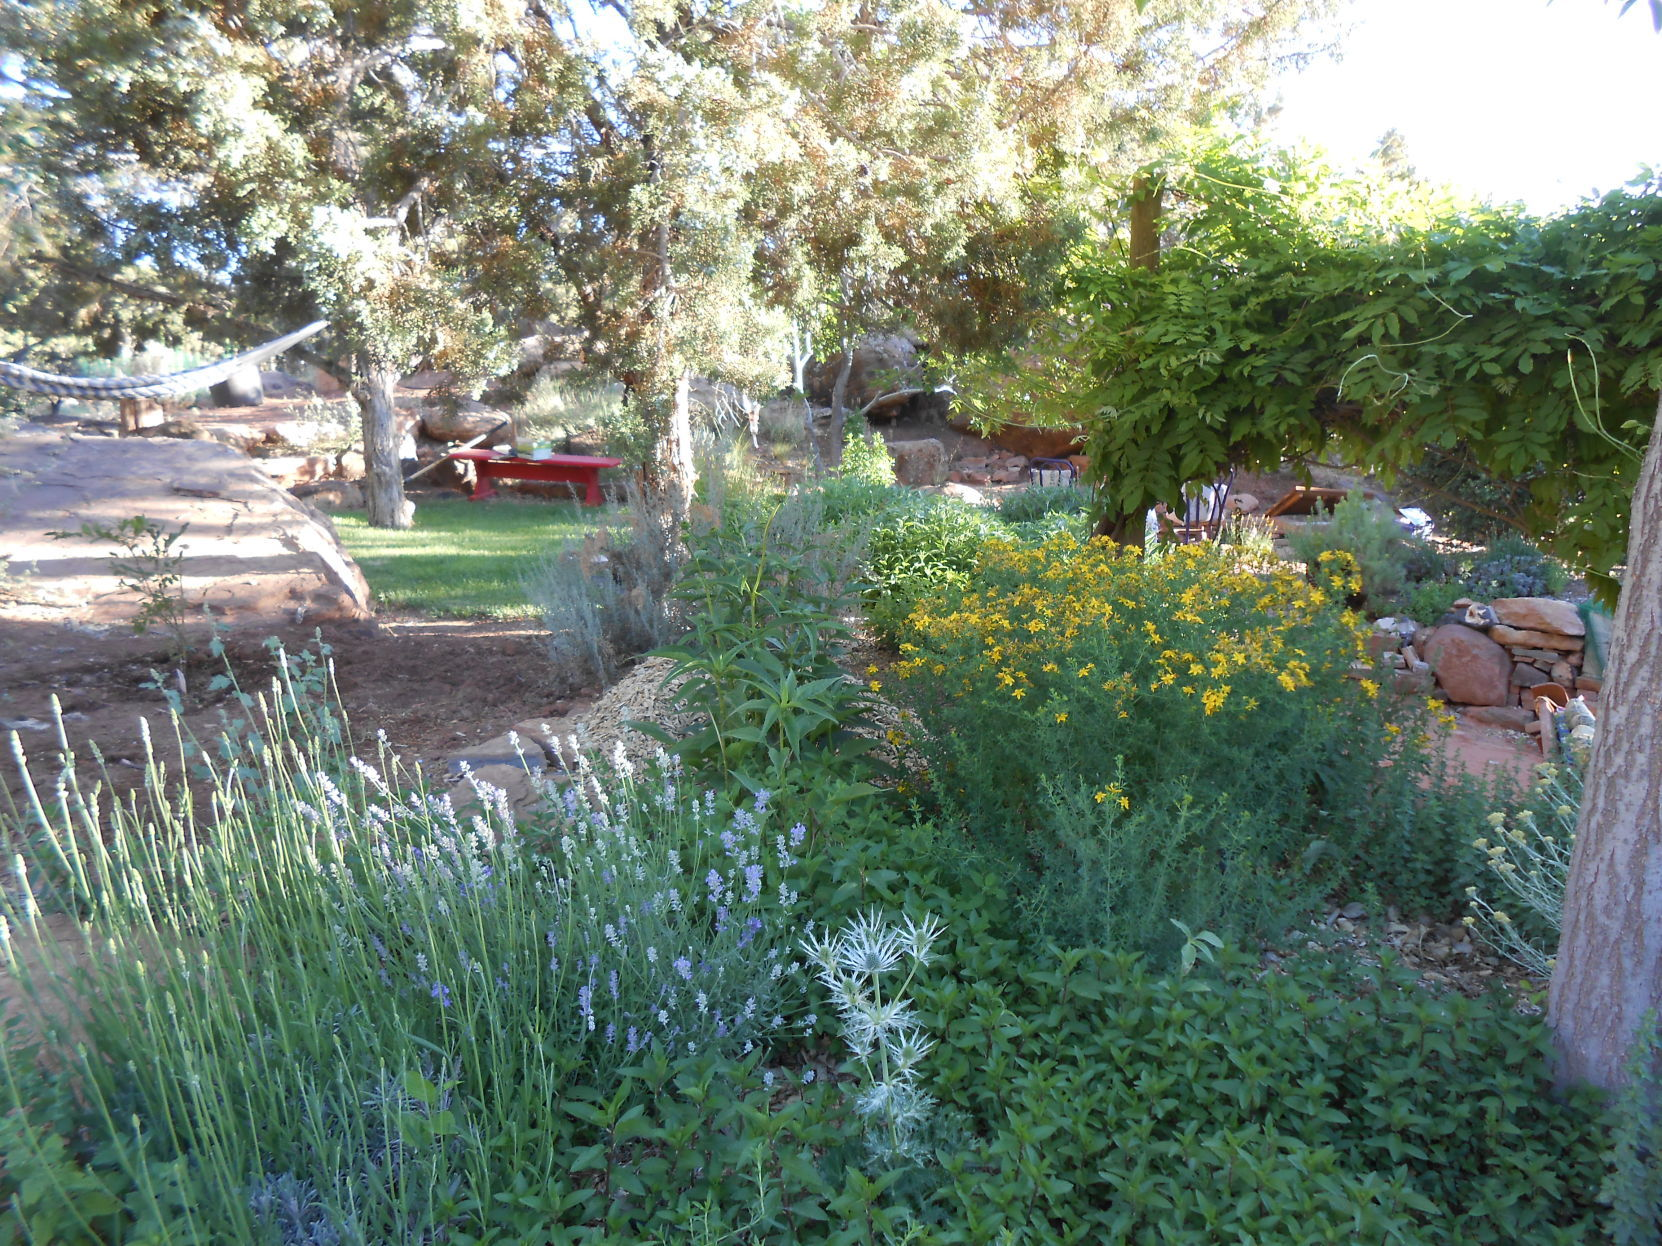 New Book On Southwest Gardening Offers Inspiration, Growth